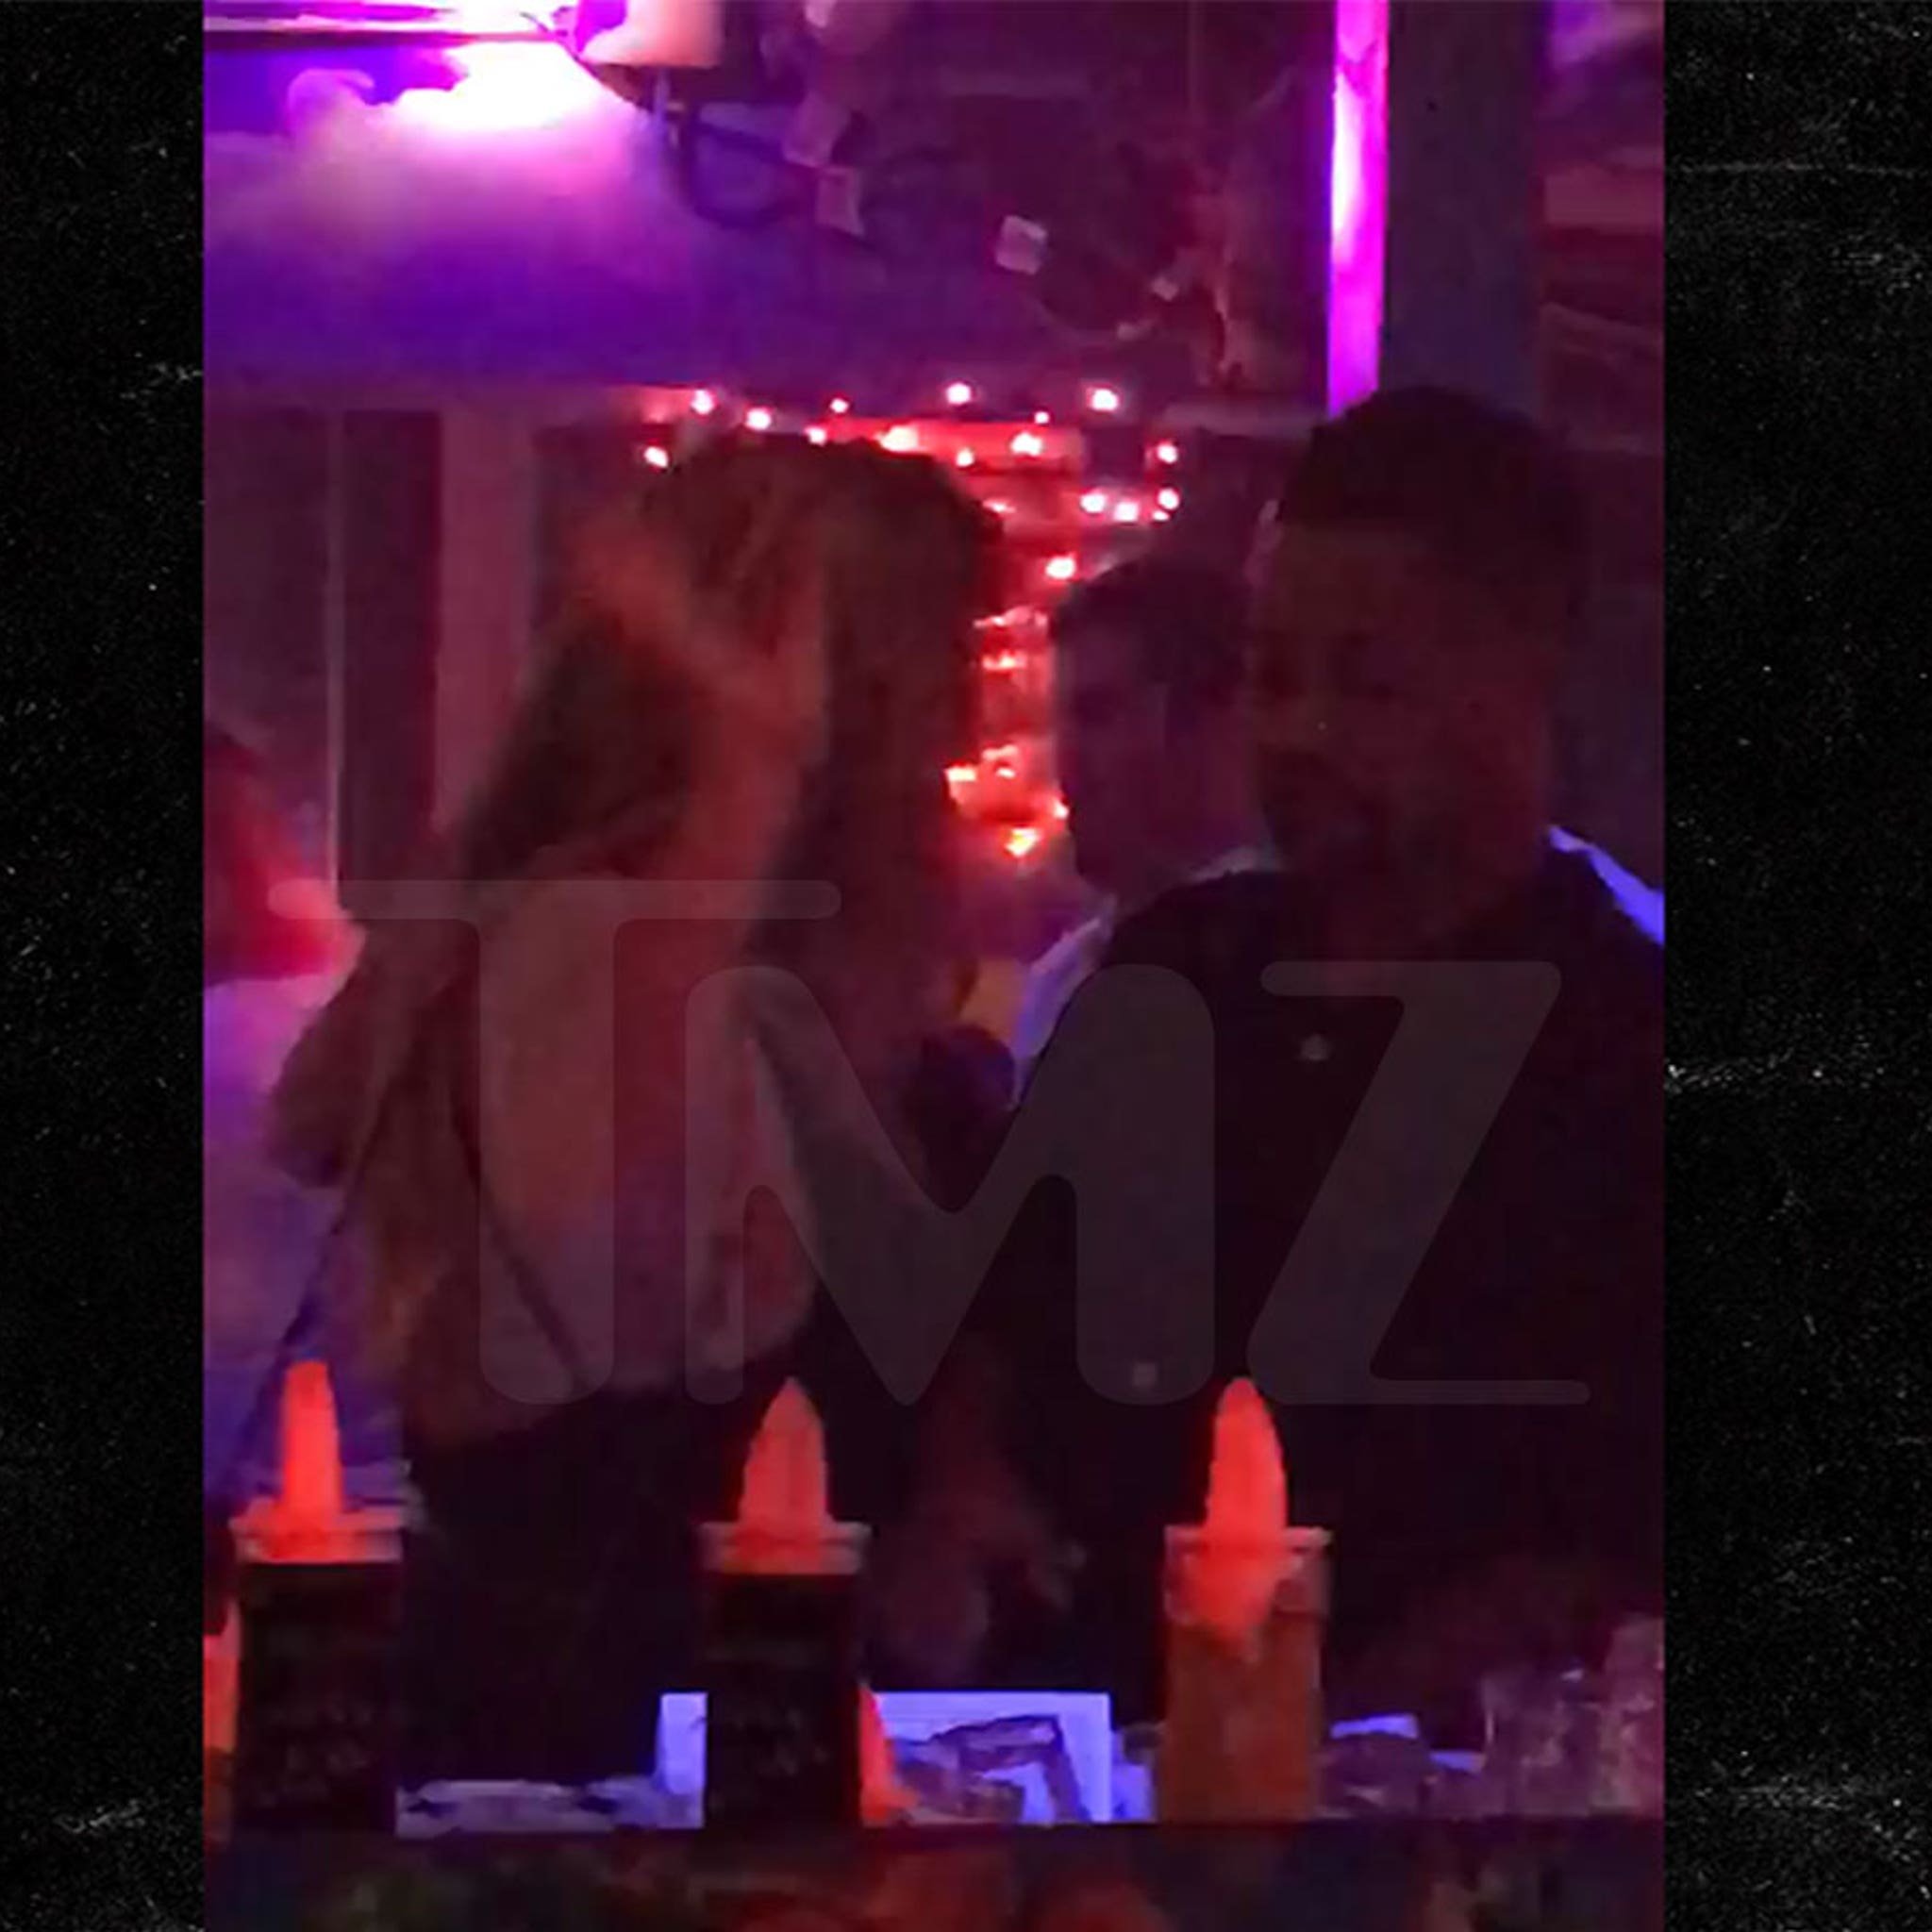 Cuba Gooding Jr.'s Girlfriend Flips Out On Him in Florida Bar